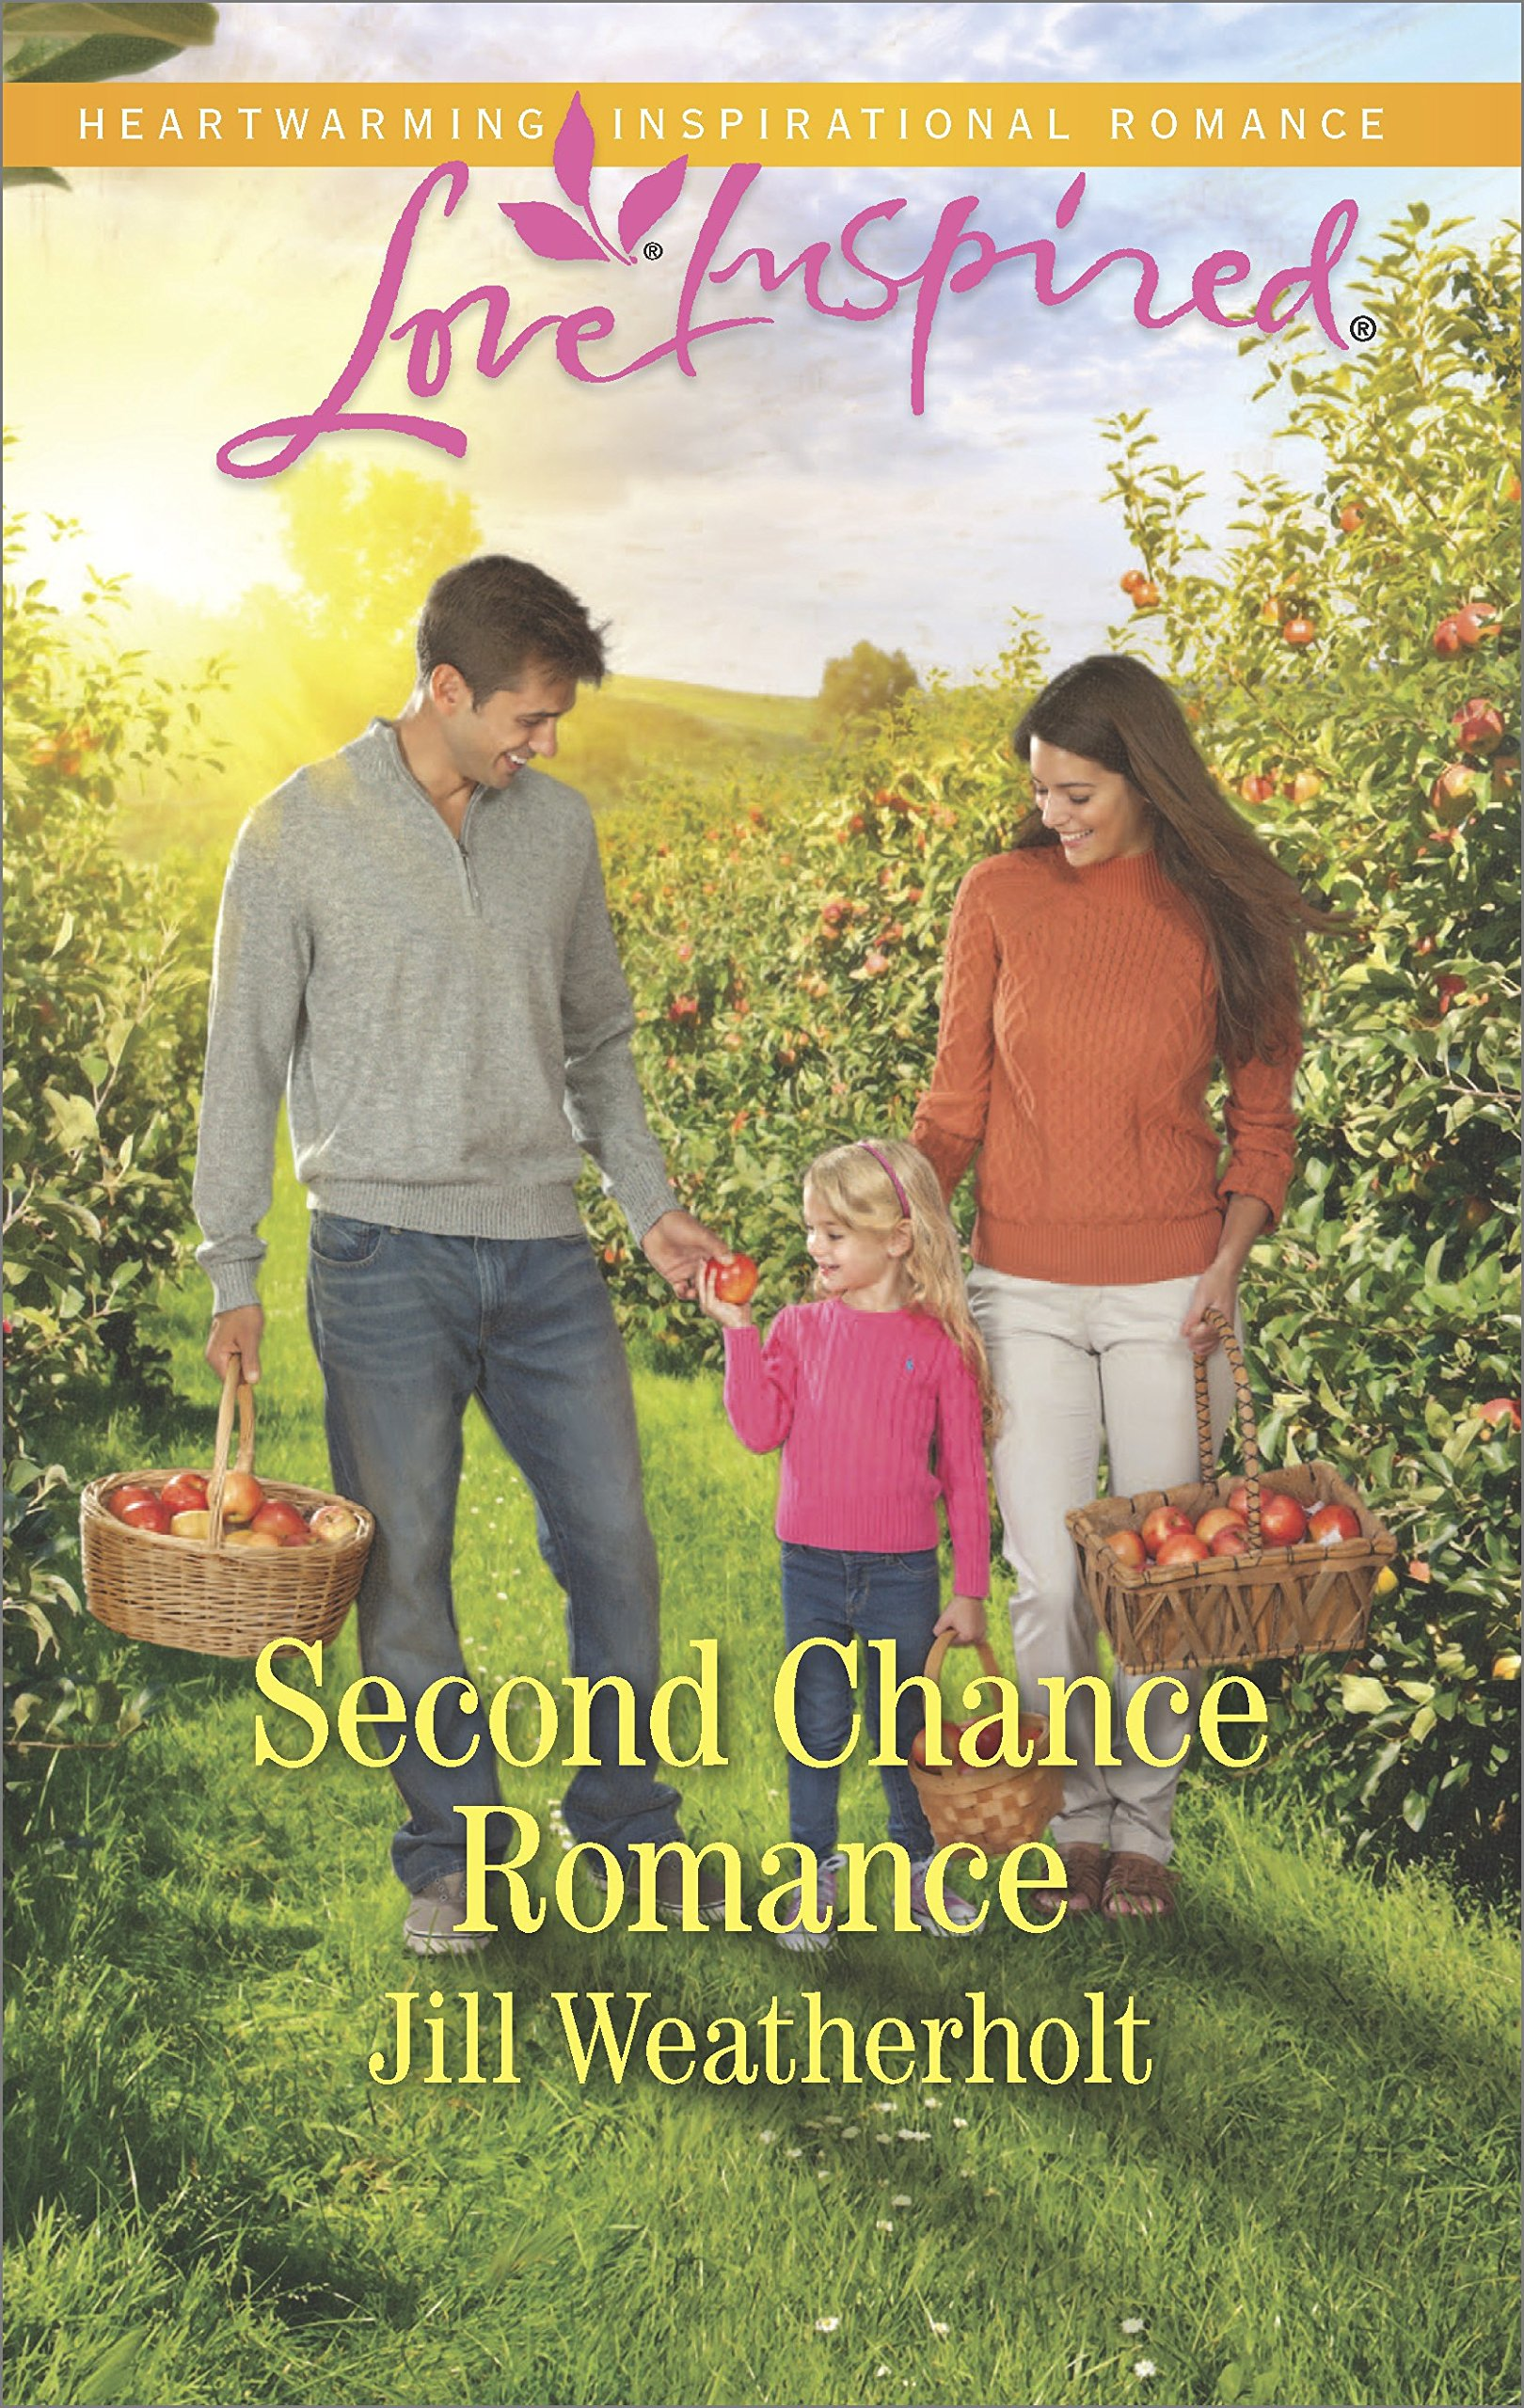 Second Chance Romance Love Inspired product image